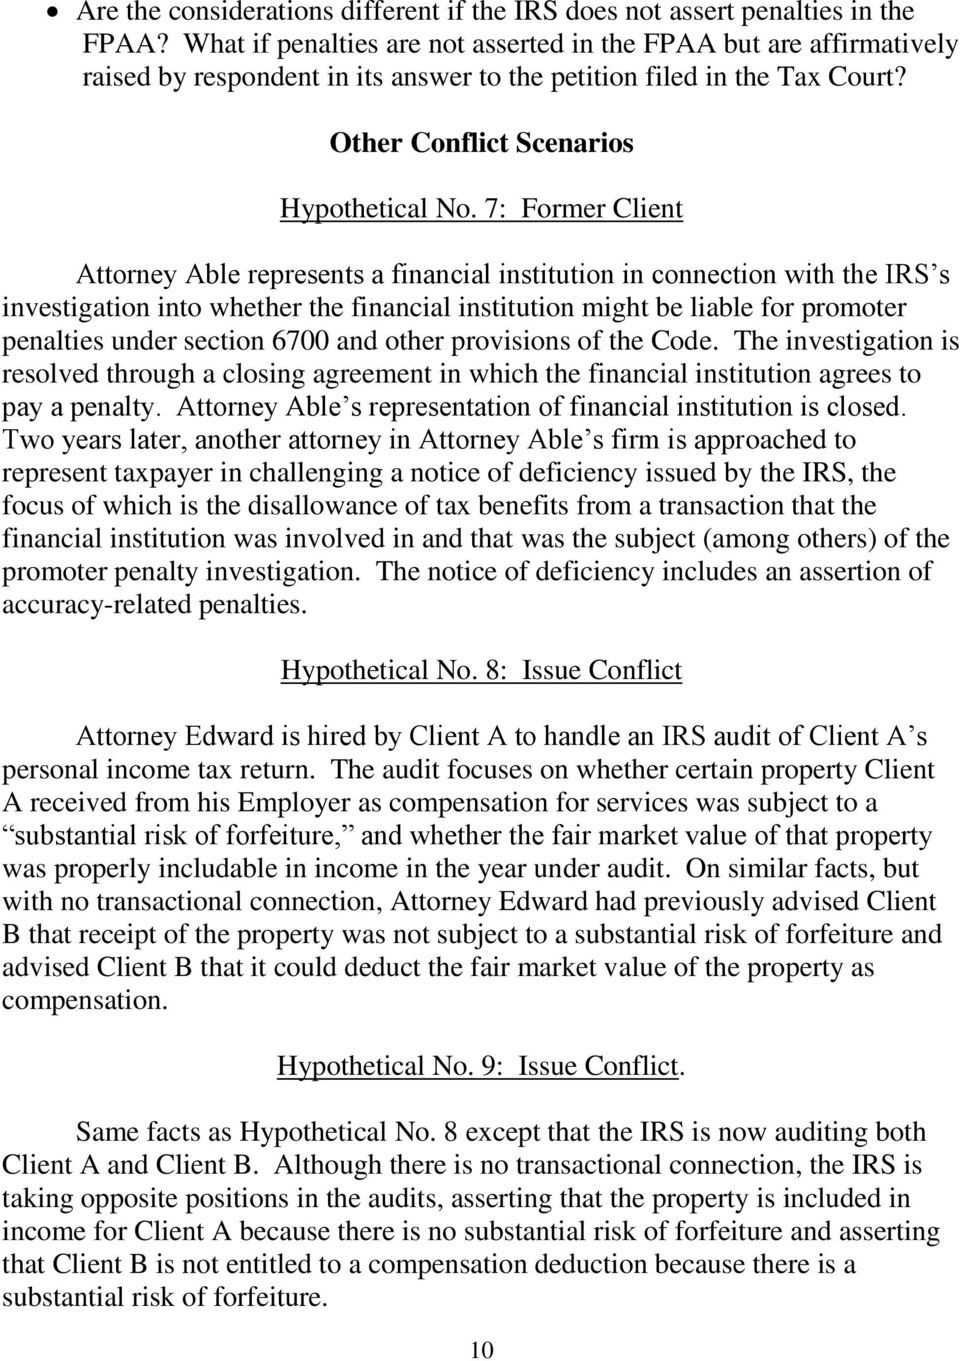 7: Former Client Attorney Able represents a financial institution in connection with the IRS s investigation into whether the financial institution might be liable for promoter penalties under